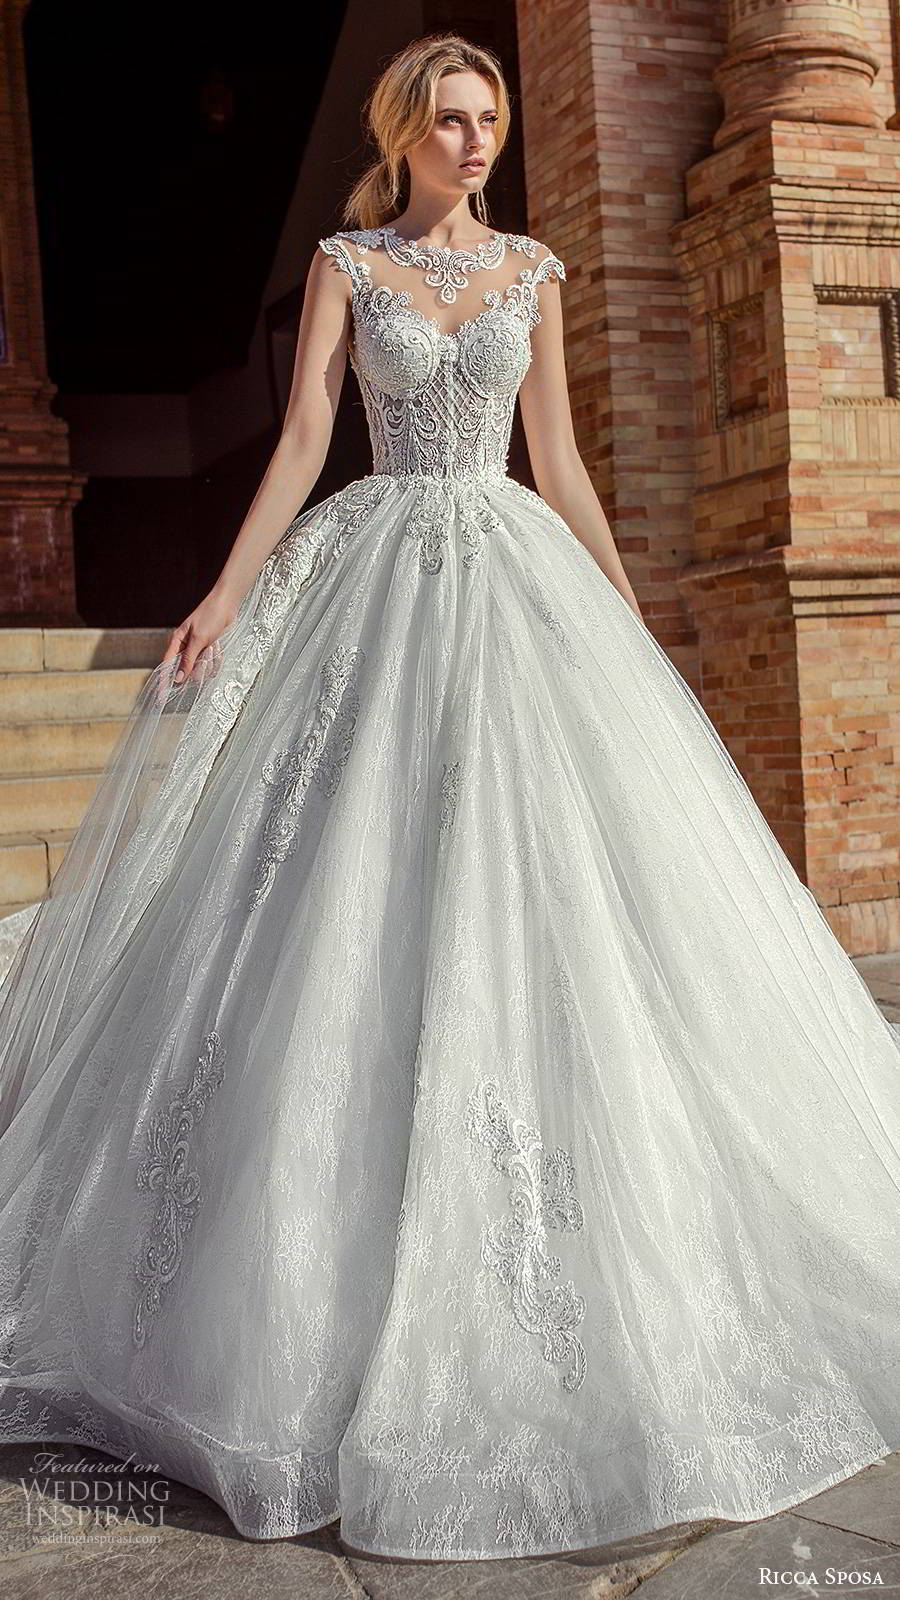 ricca sposa 2019 bridal illusion cap sleeves jewel neckline embellished bodice romantic princess a line ball gown wedding dress illusion back cathedral train (3) mv